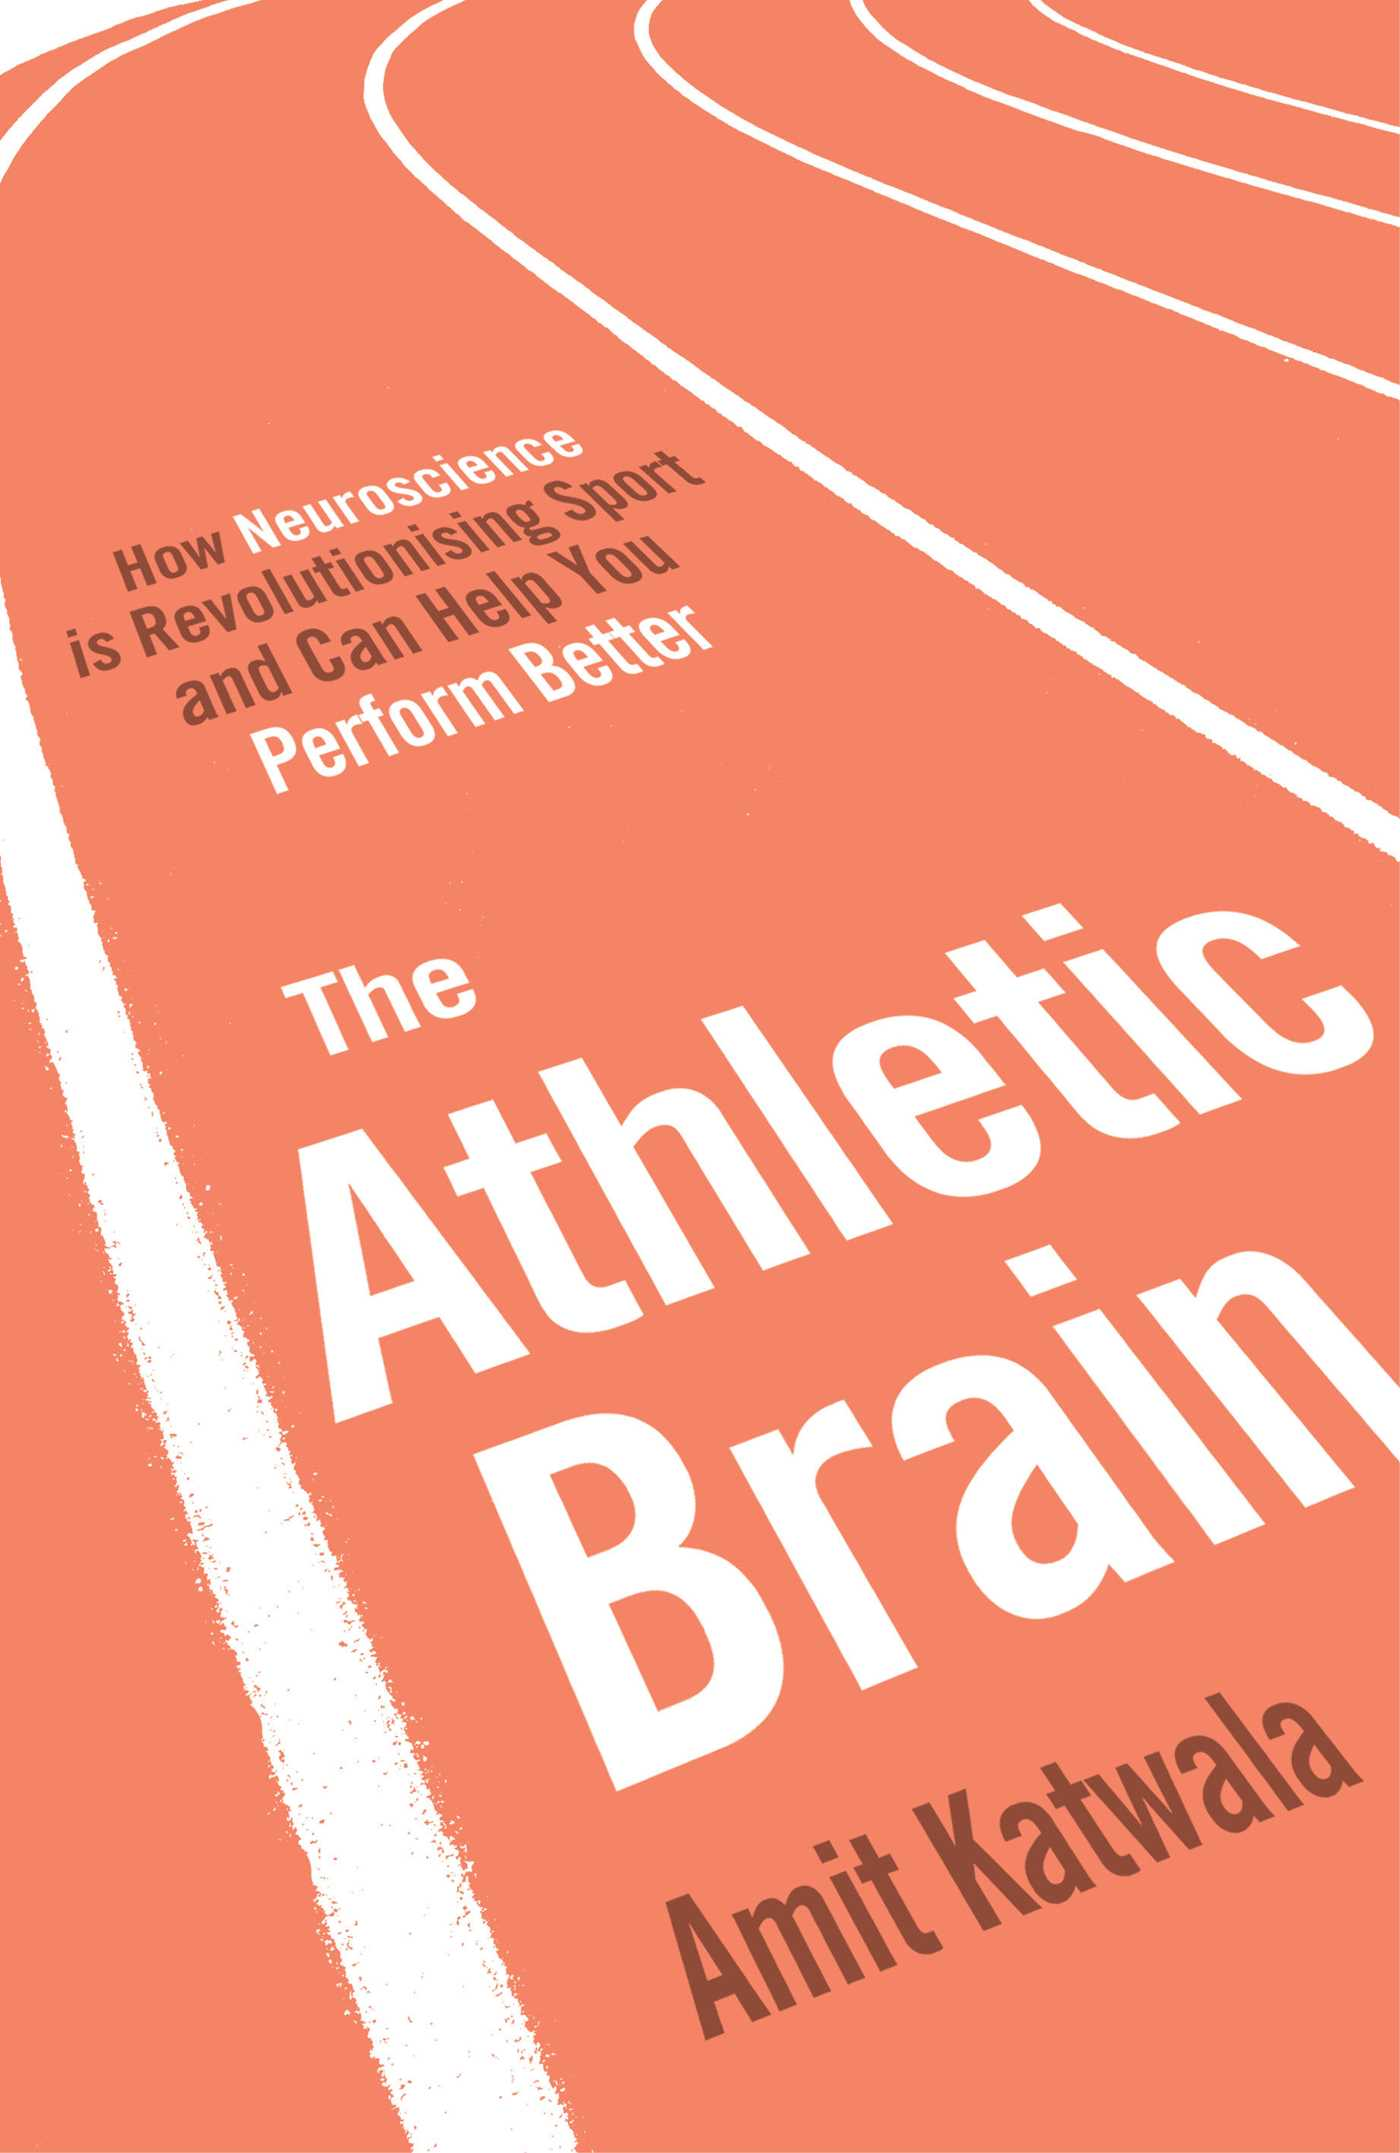 The athletic brain 9781471155901 hr